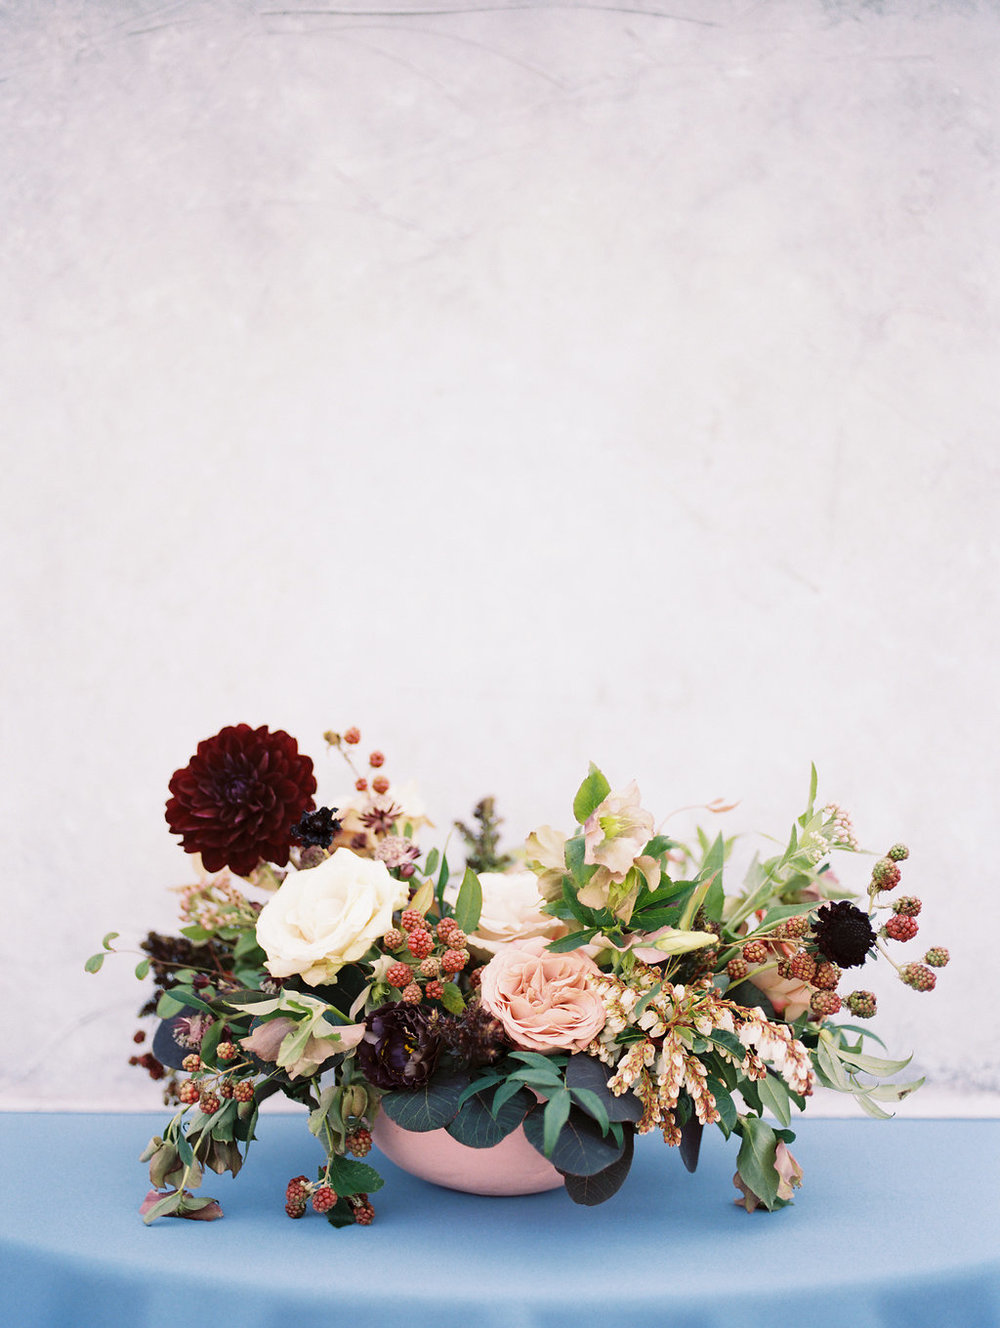 Burgundy and Blush Wedding Flowers - Wedding Centrepiece IDeas